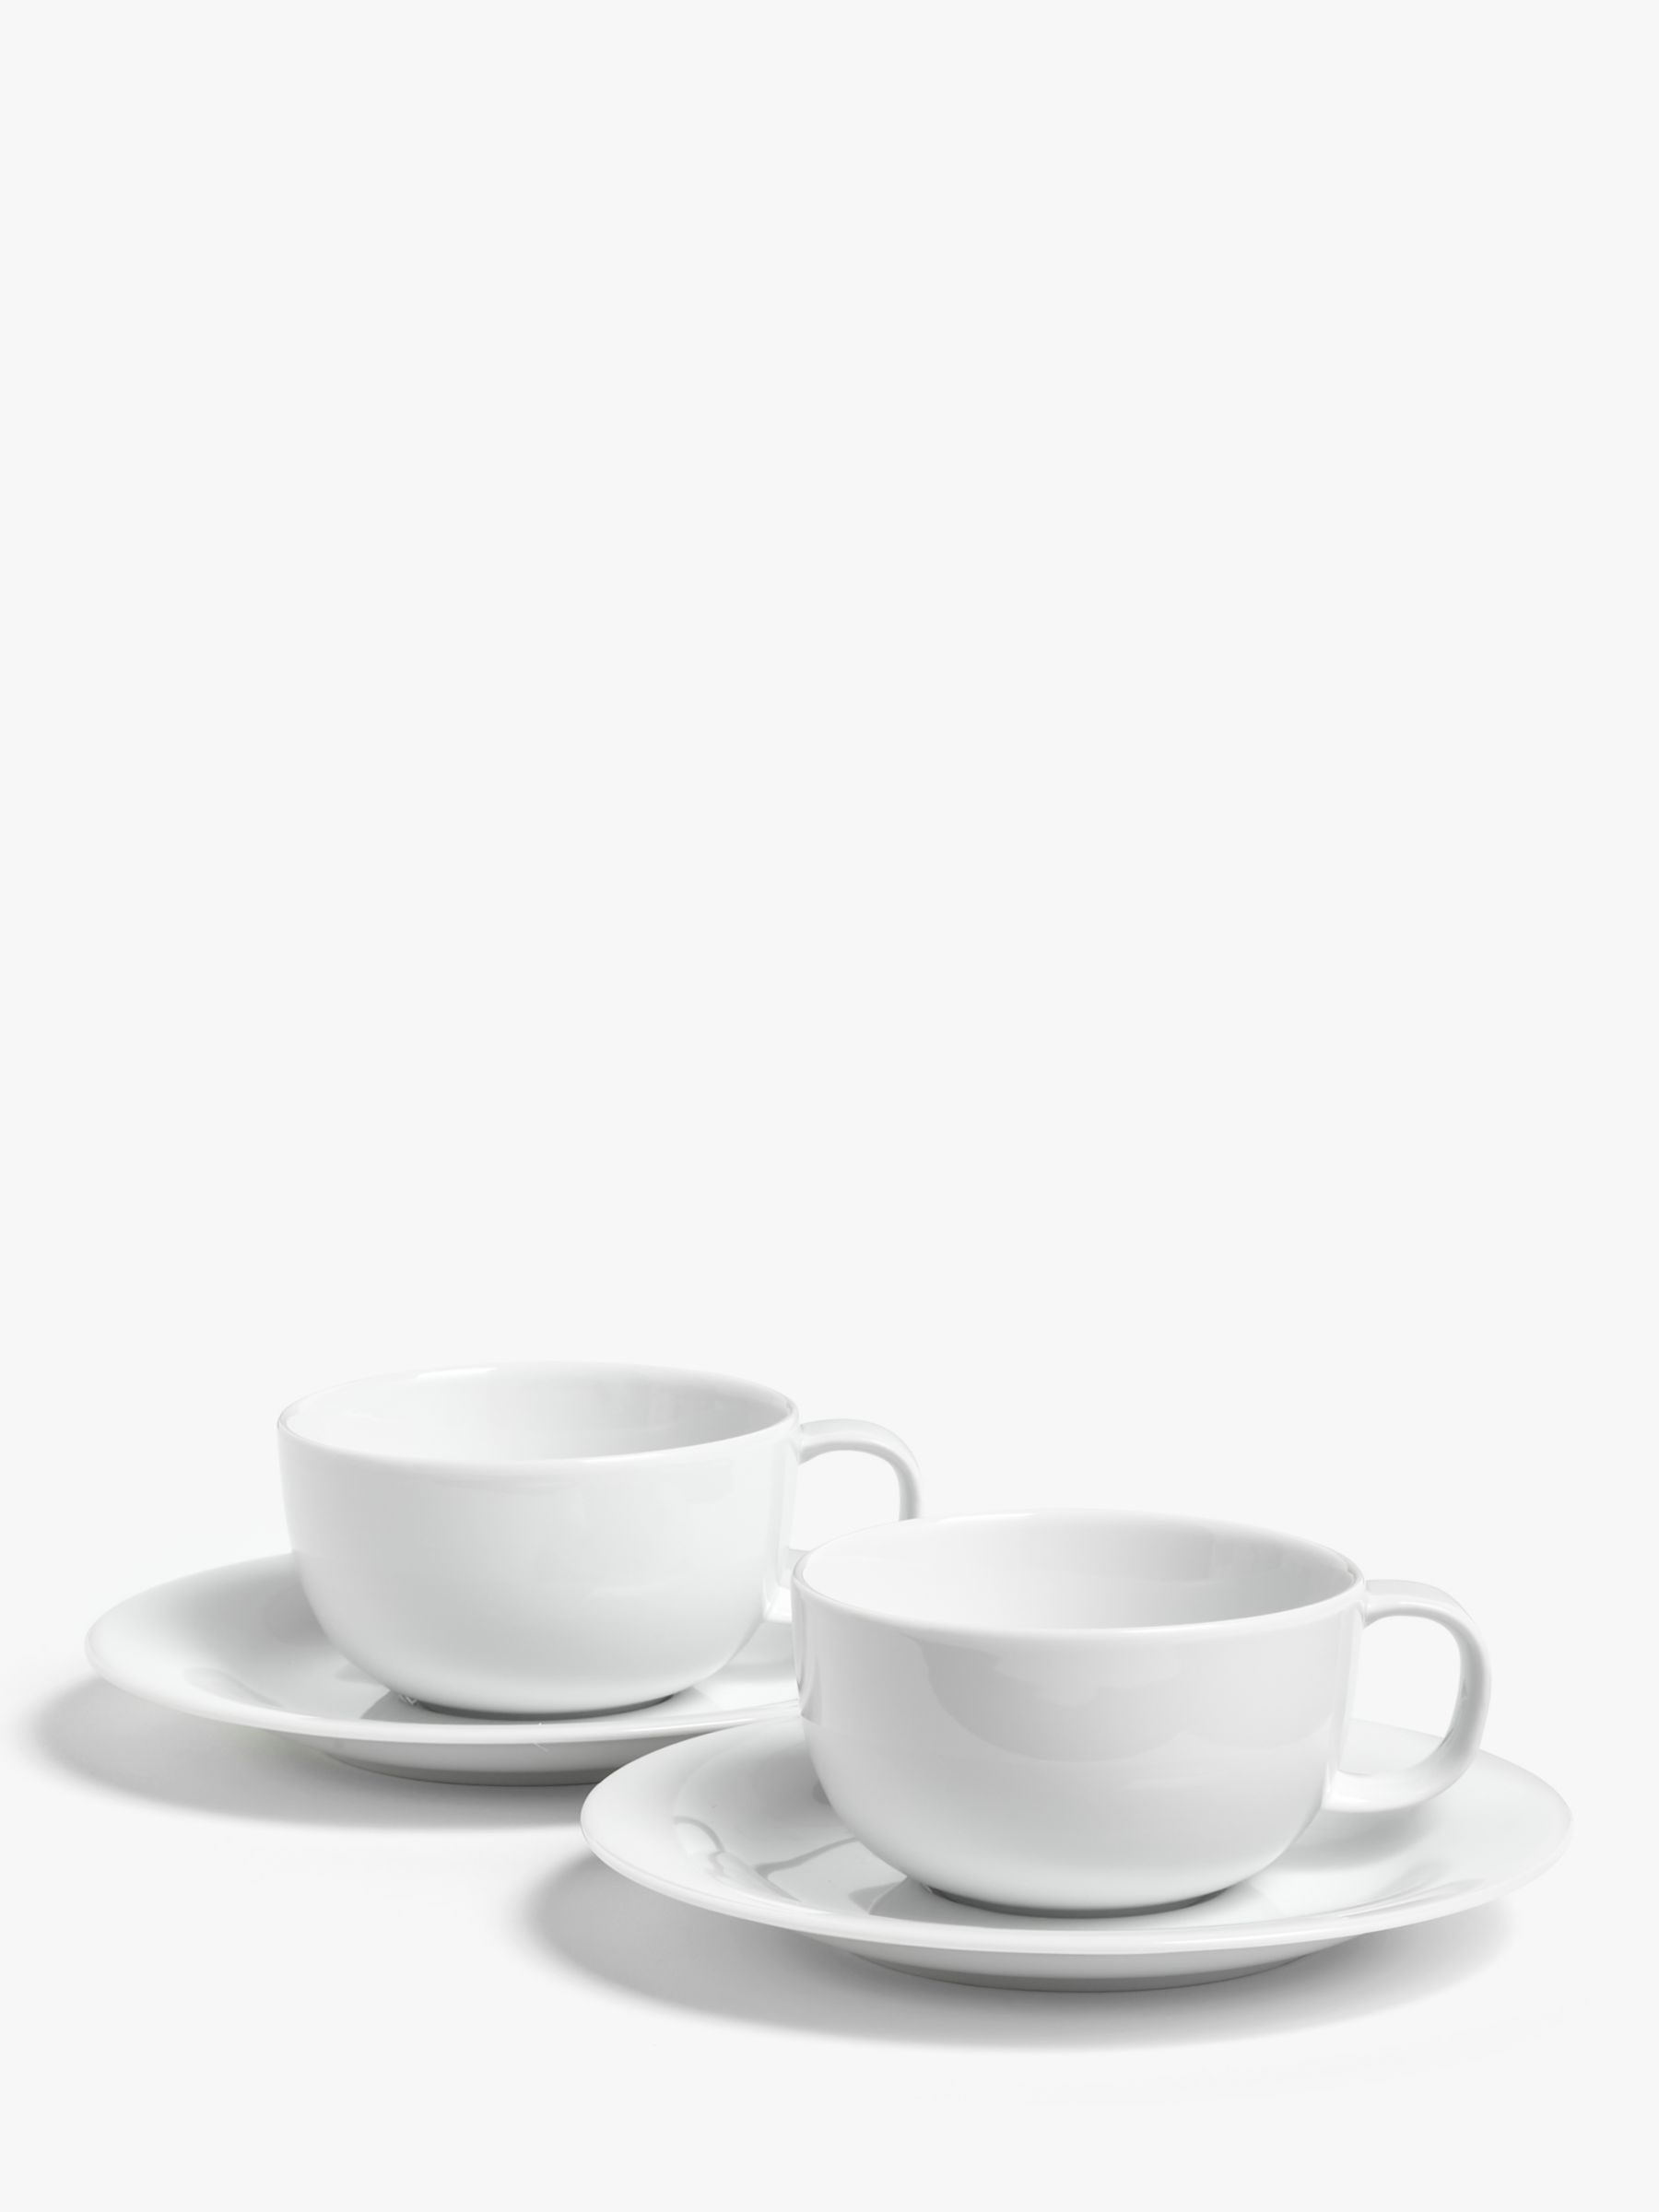 House by John Lewis House by John Lewis Eat Cup & Saucer, Set of 2, White, 270ml